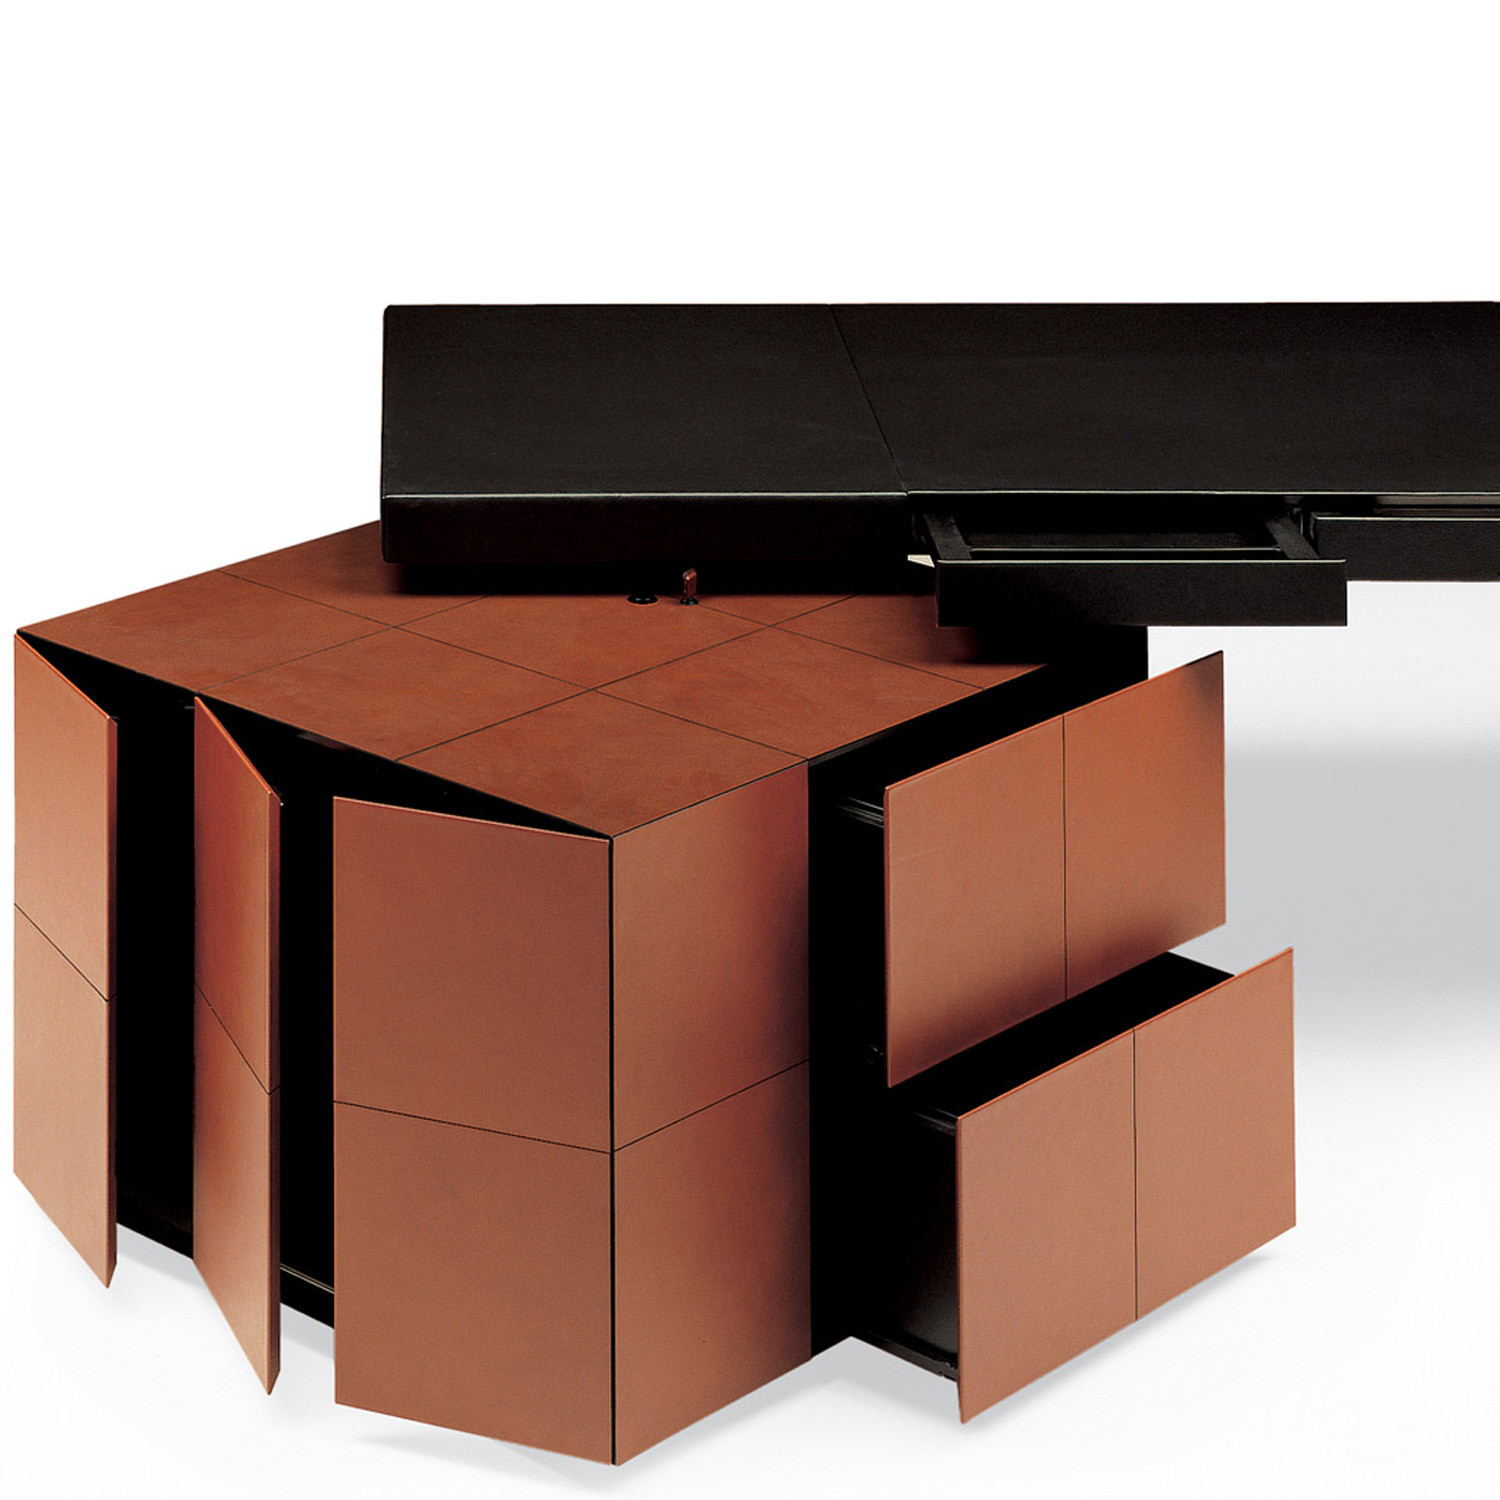 CEO Cube Desk Open Drawers